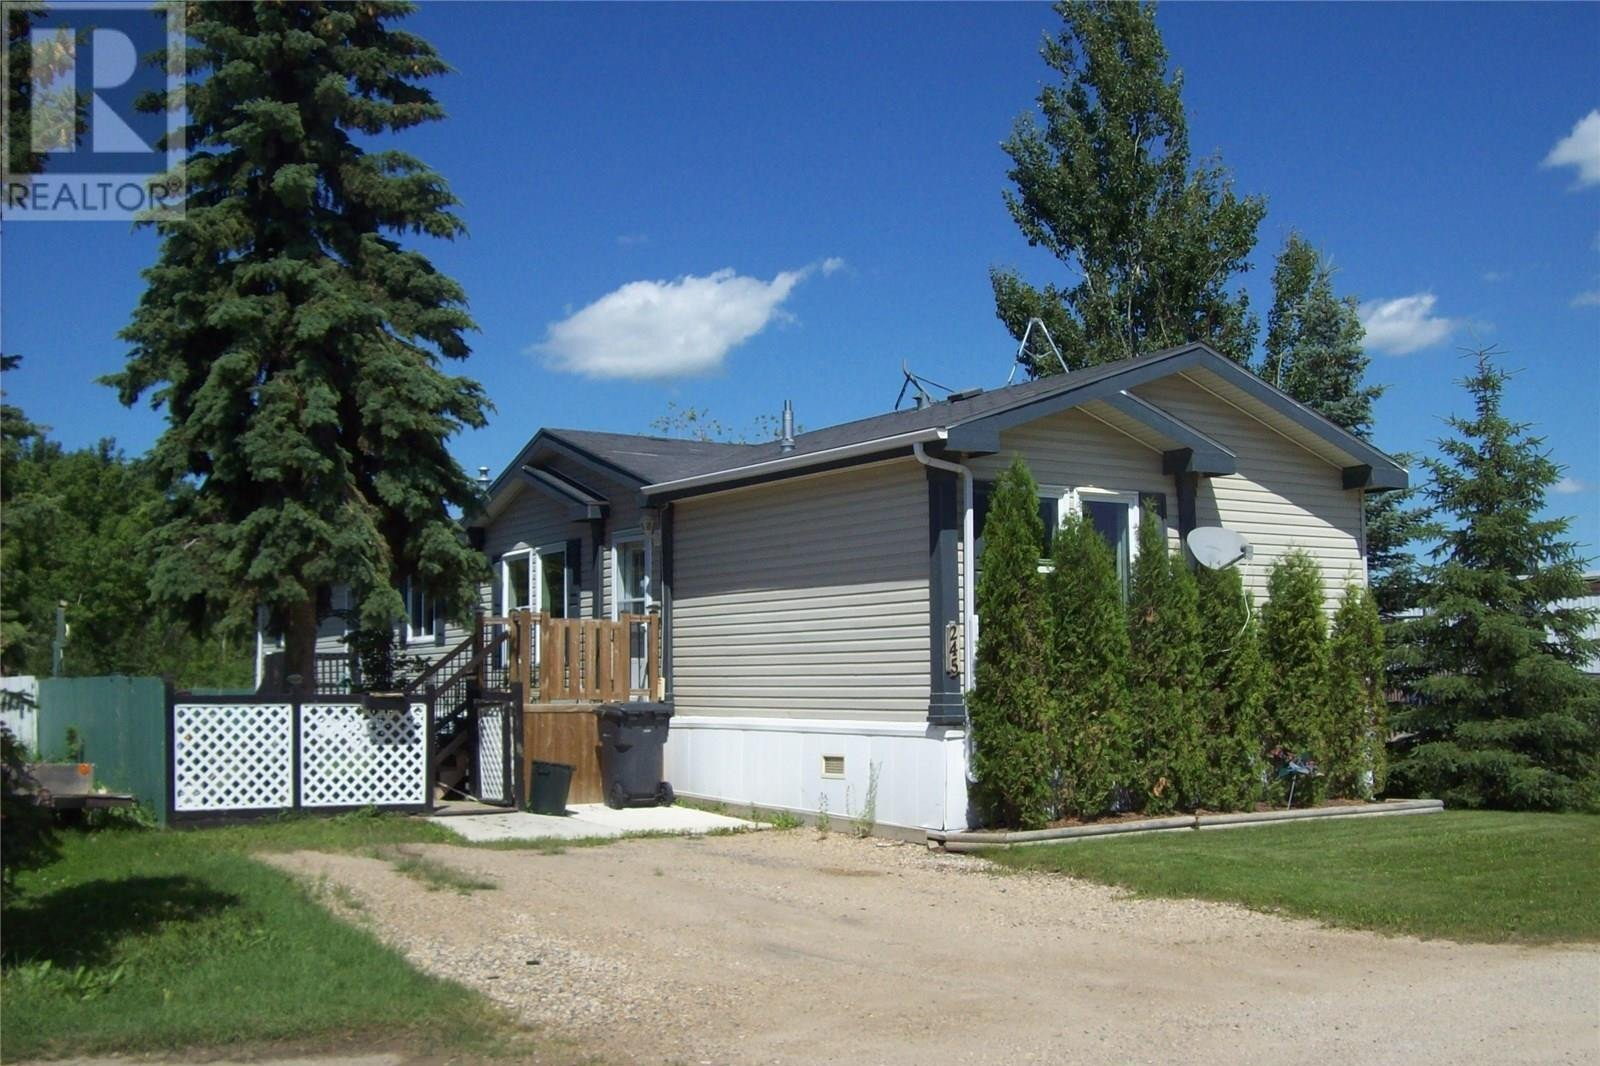 Home for sale at 245 Cypress Wy Sunset Estates Saskatchewan - MLS: SK817273